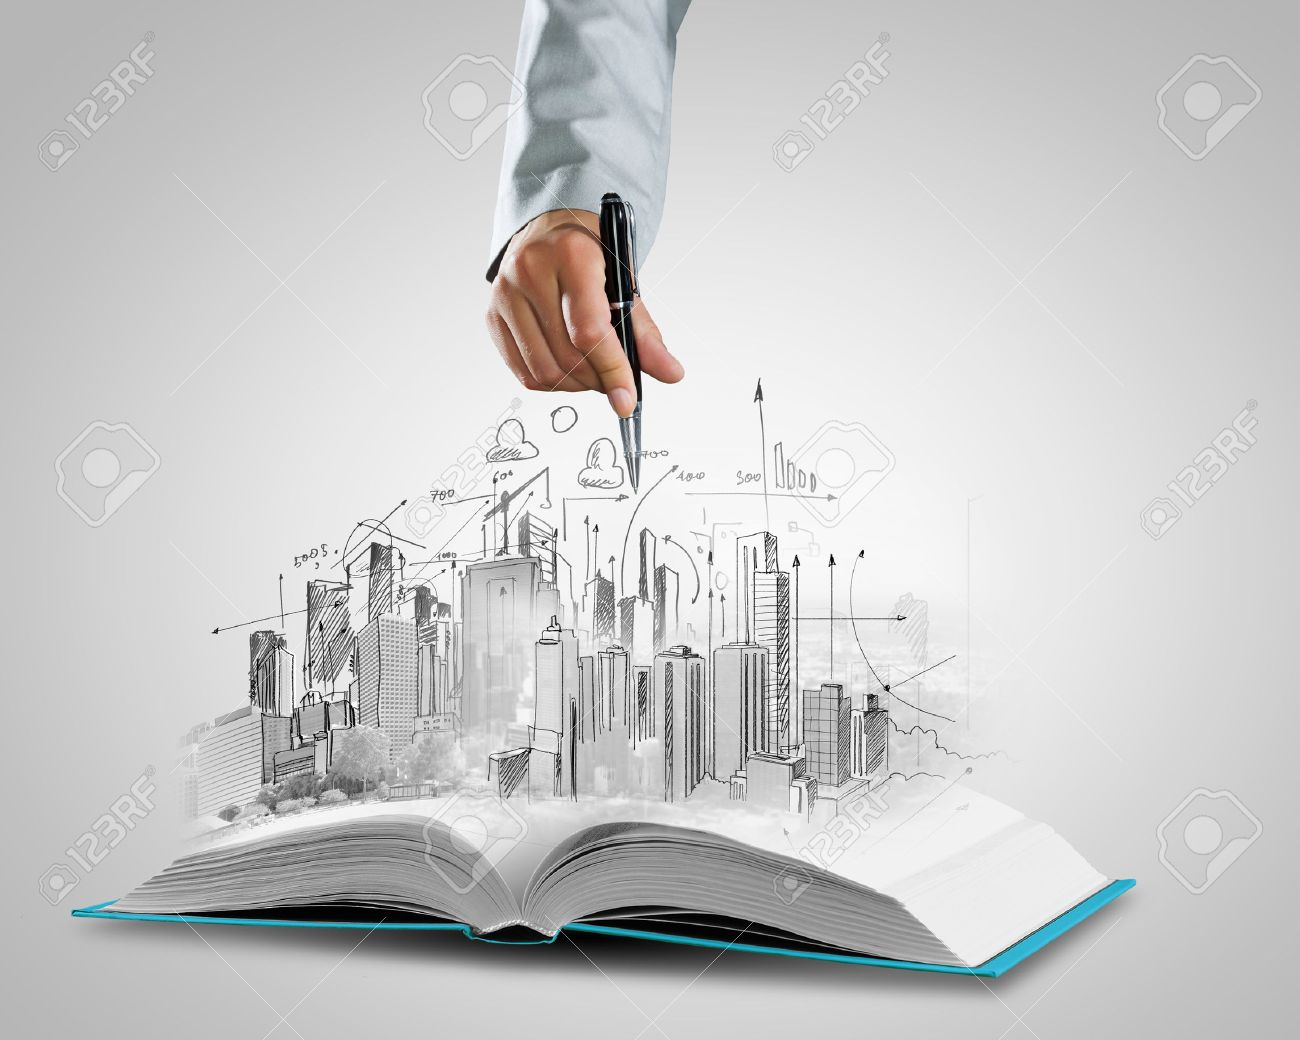 Opened book and hand drawing building sketches Stock Photo - 24504261